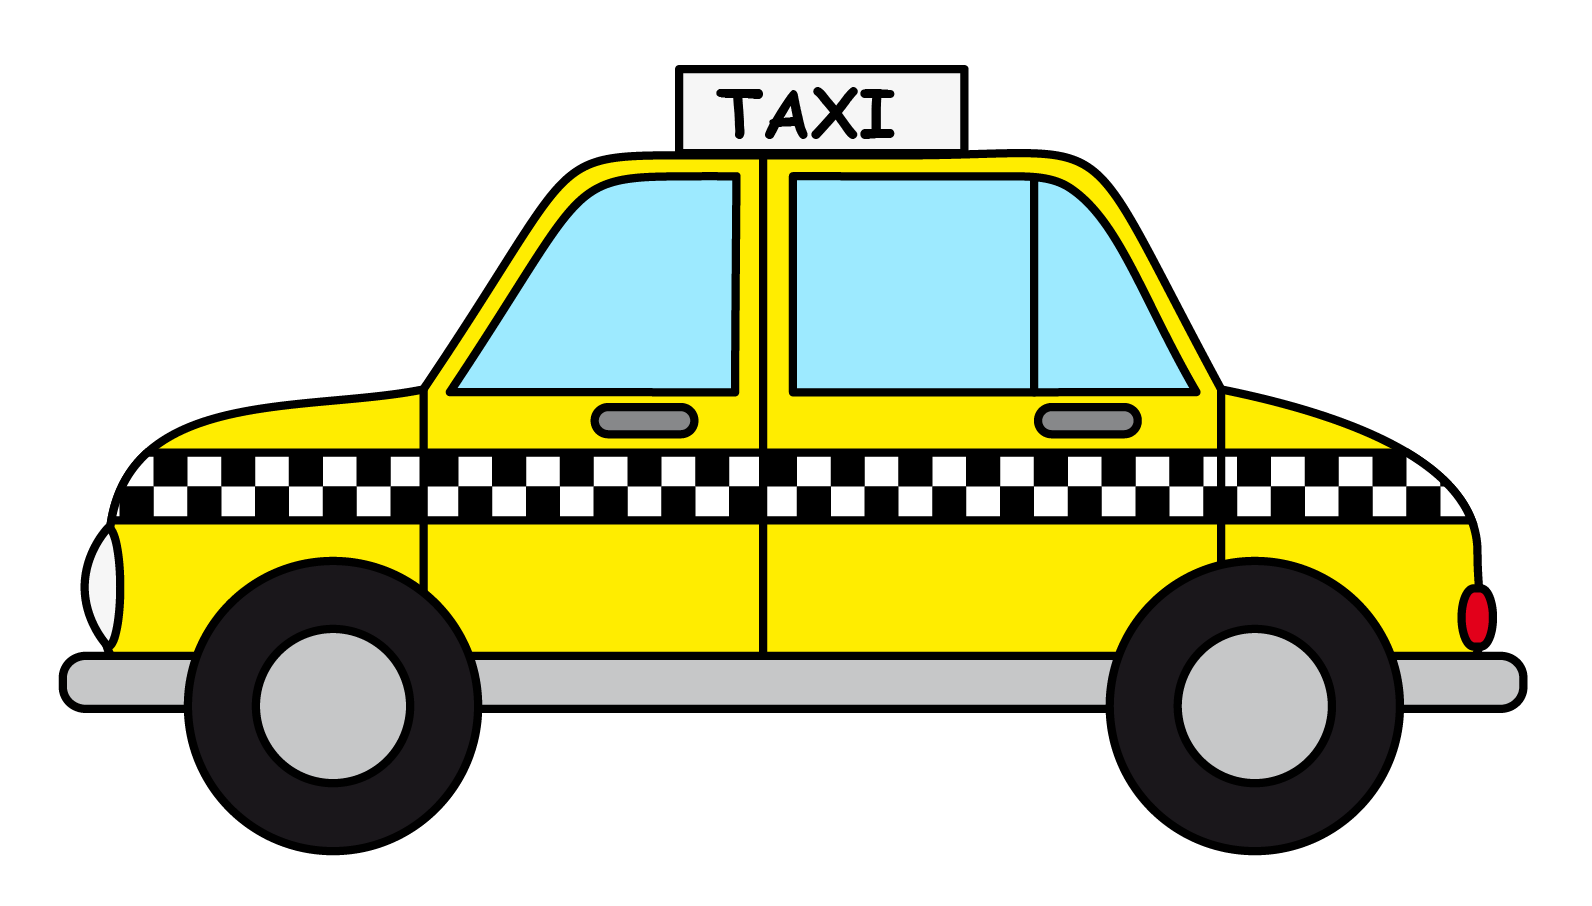 Taxi Clipart - Clipart Suggest - 54.1KB